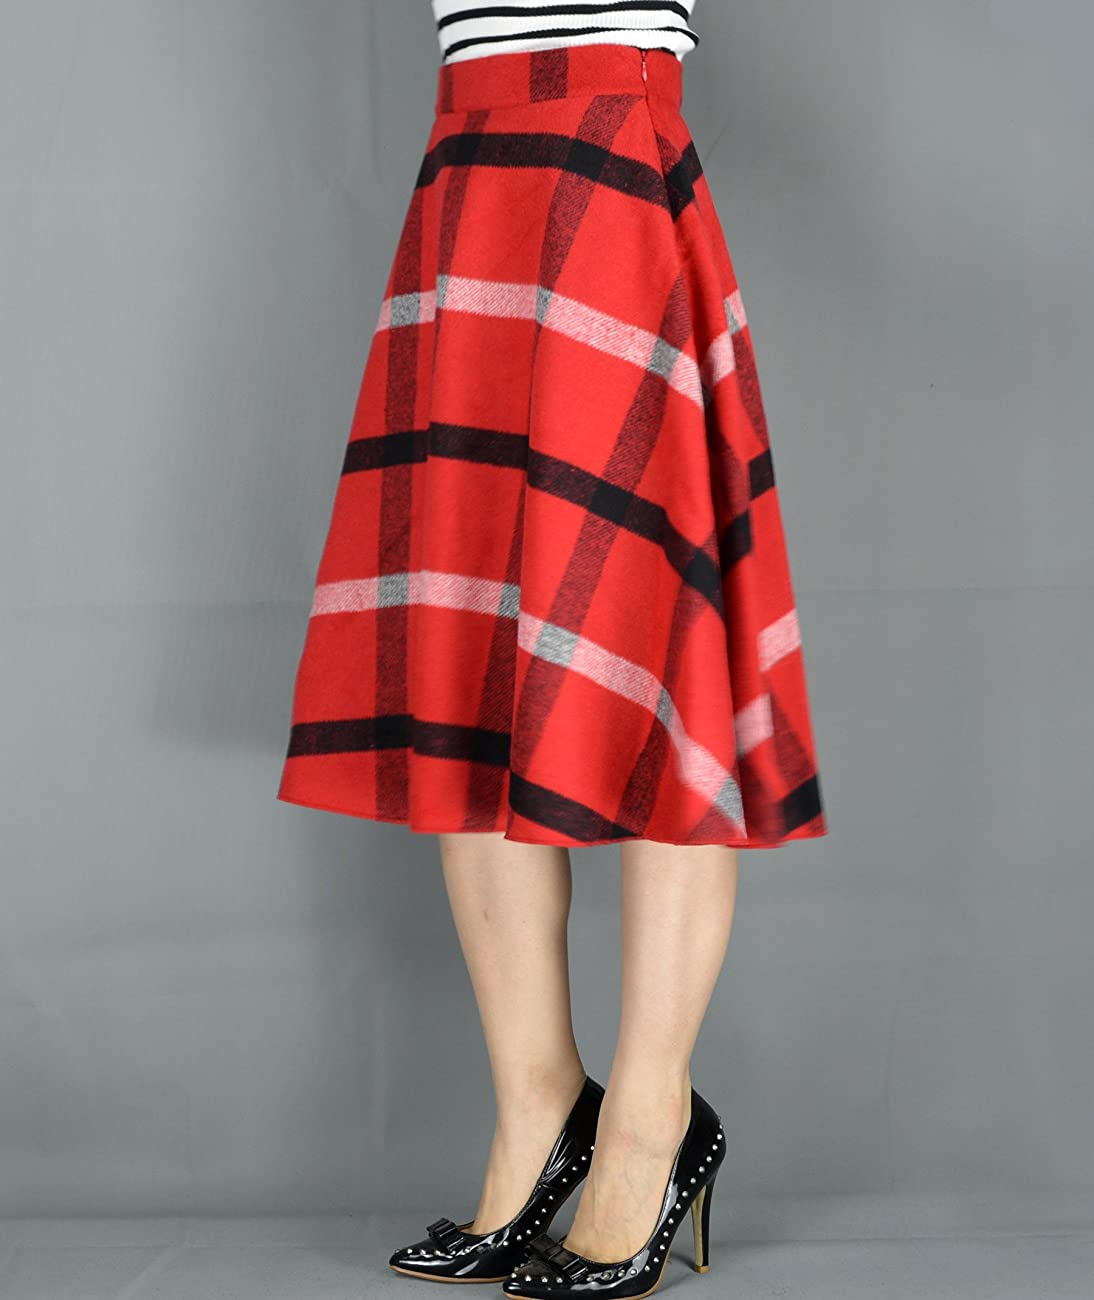 YSJ Women's Wool Midi Skirt A-Line Pleated Vintage Plaid Winter Swing Skirts 4